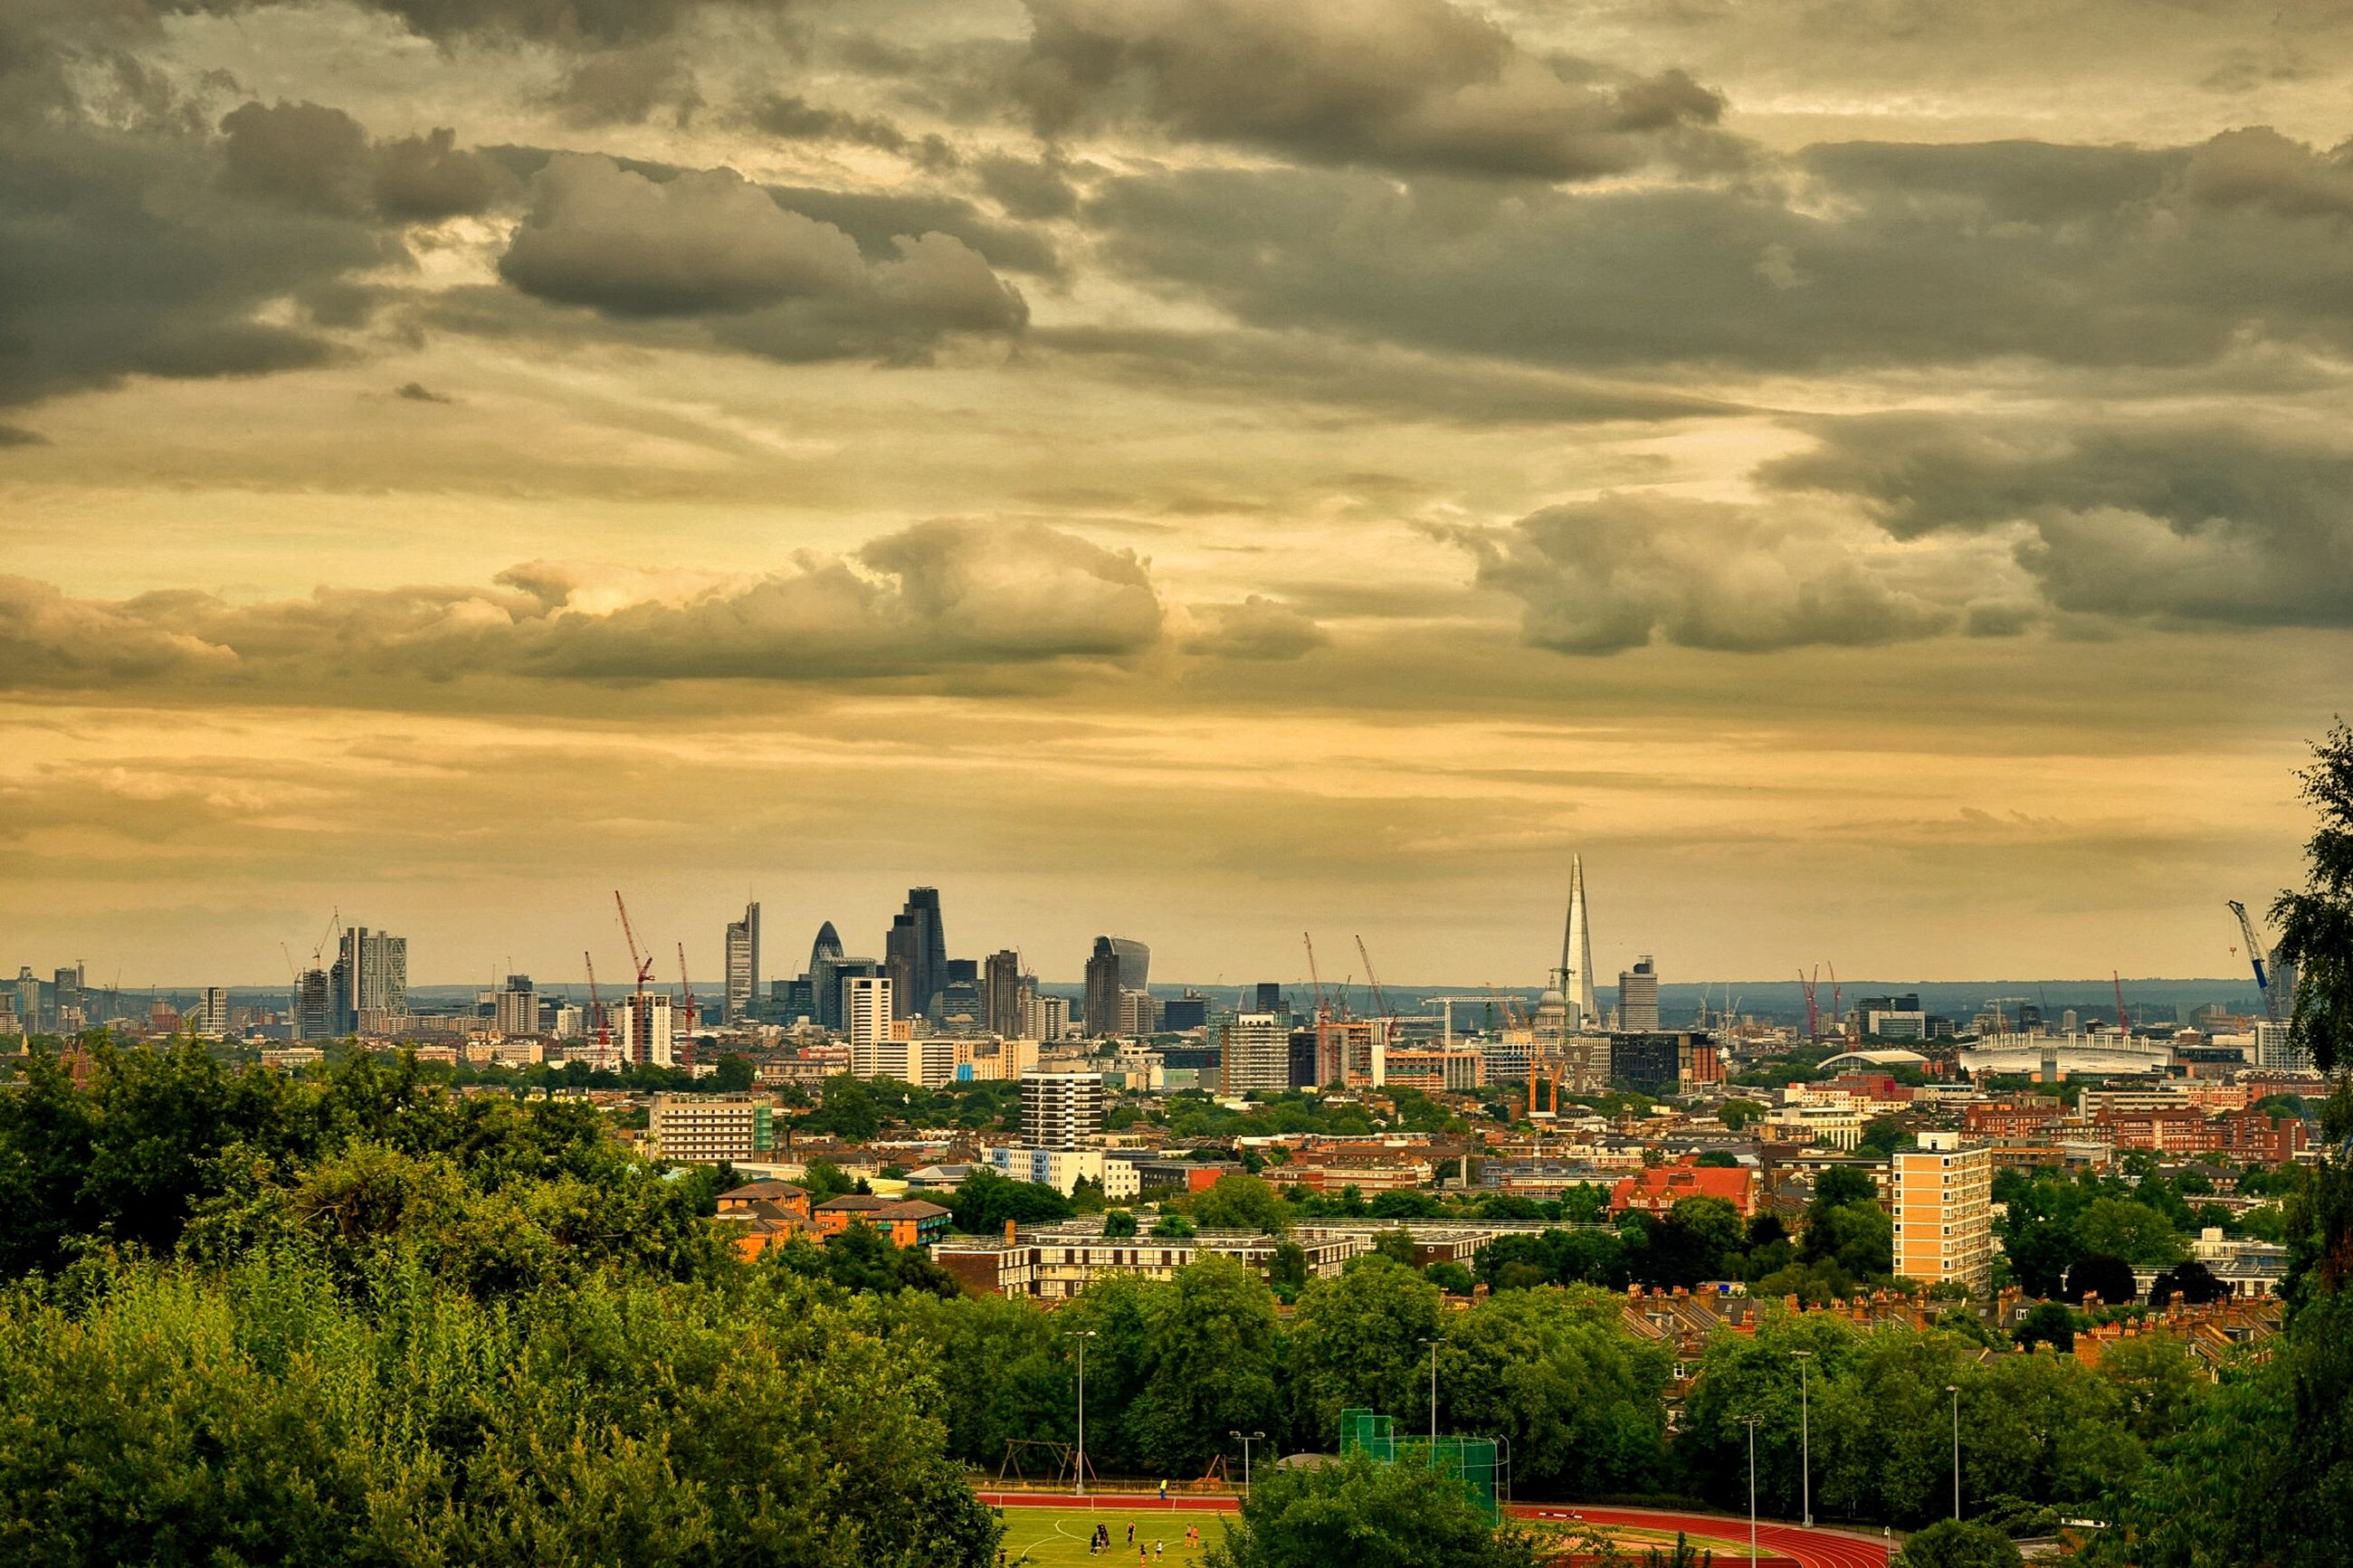 building exterior, architecture, cityscape, built structure, sky, city, cloud - sky, tree, high angle view, residential district, crowded, residential building, cloudy, residential structure, cloud, growth, sunset, landscape, nature, outdoors